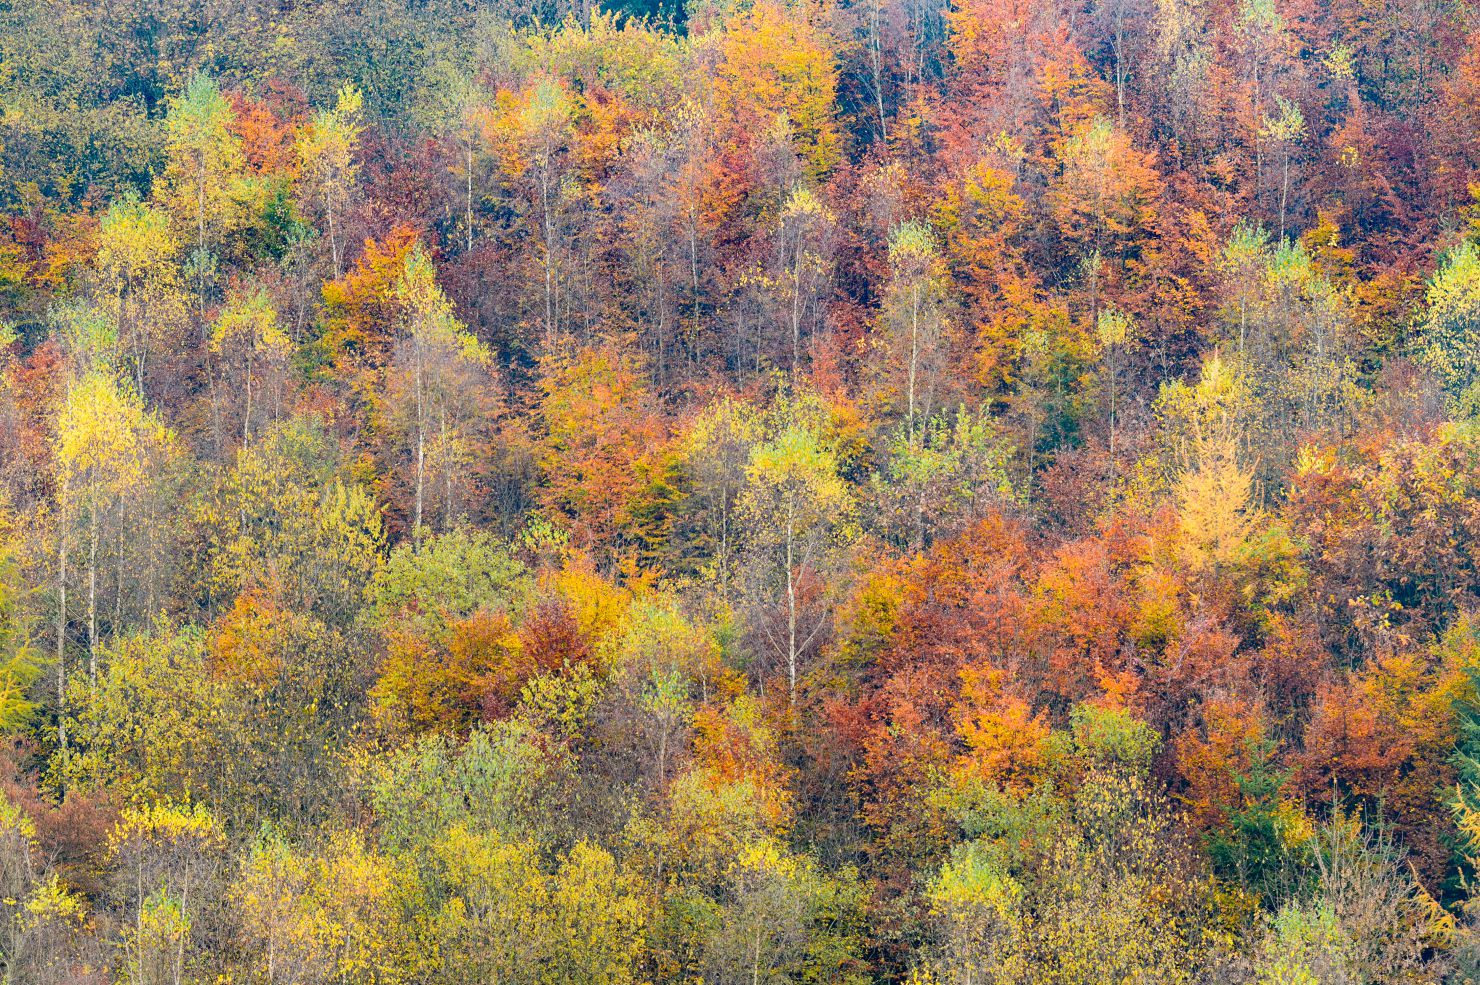 Colourful treetops